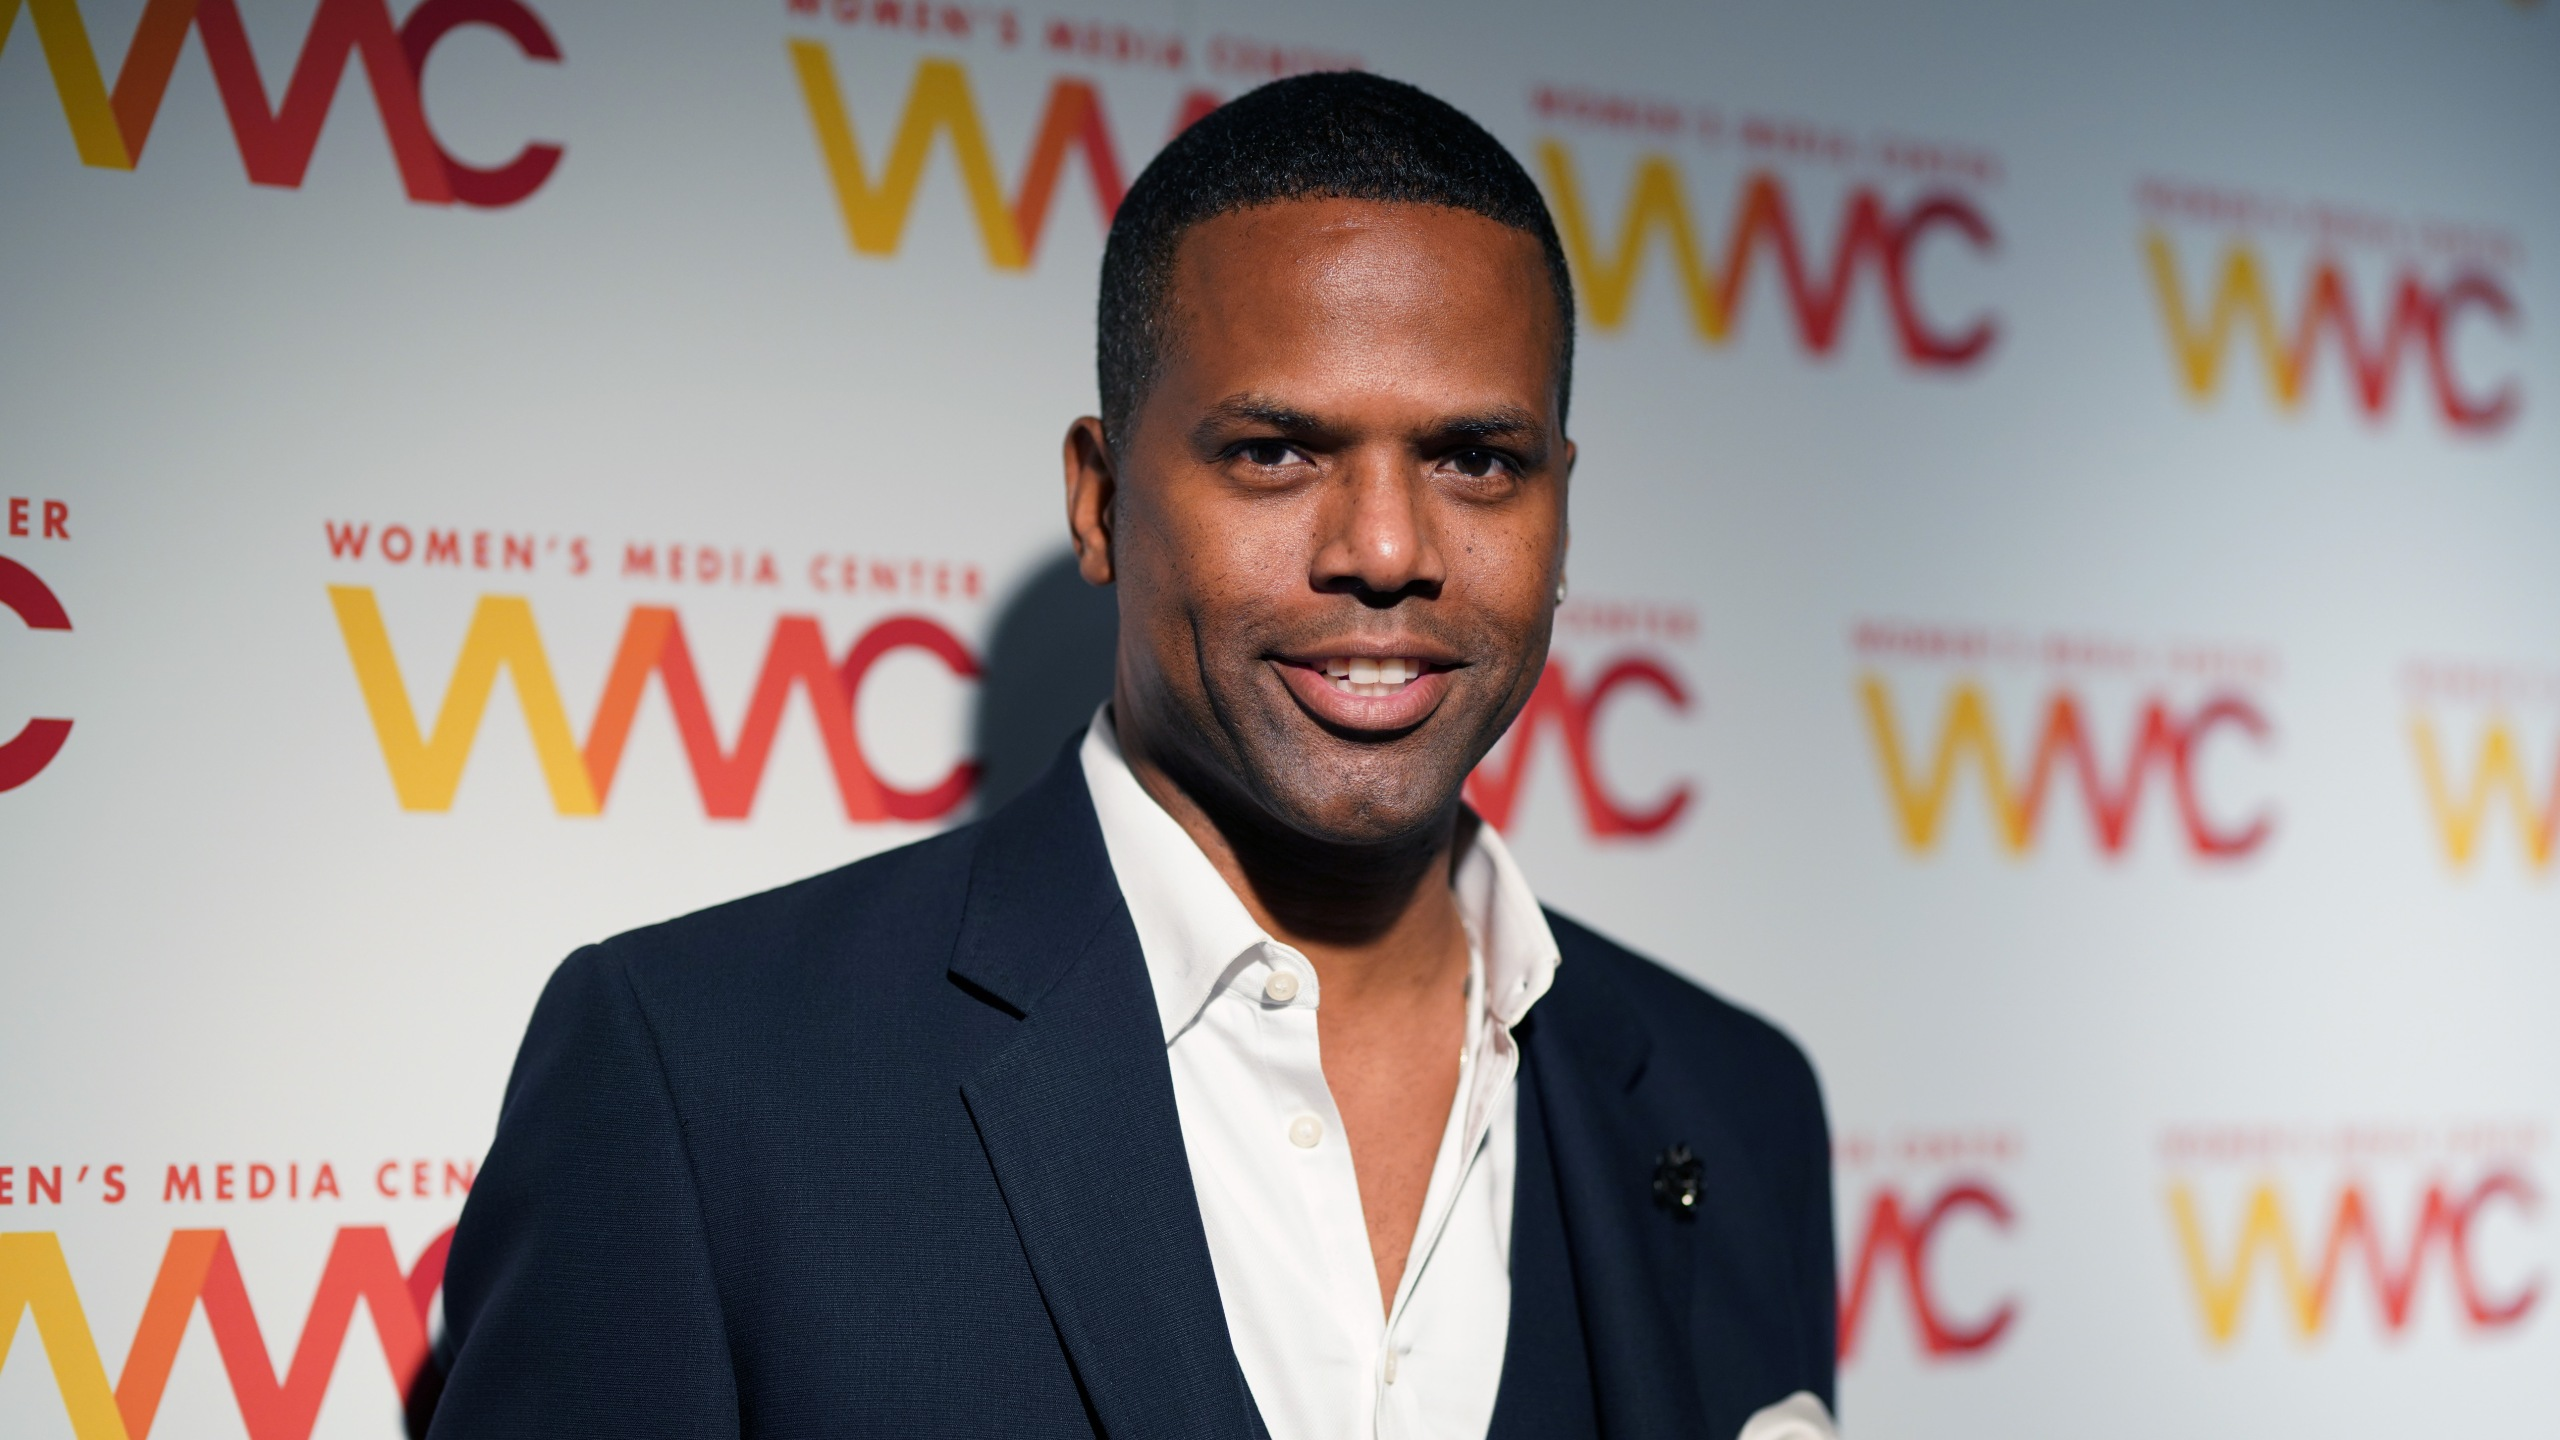 A.J. Calloway attends the 2018 Women's Media Awards at Capitale on Nov. 1, 2018 in New York City. (Credit: Jemal Countess/Getty Images for Women's Media Center)